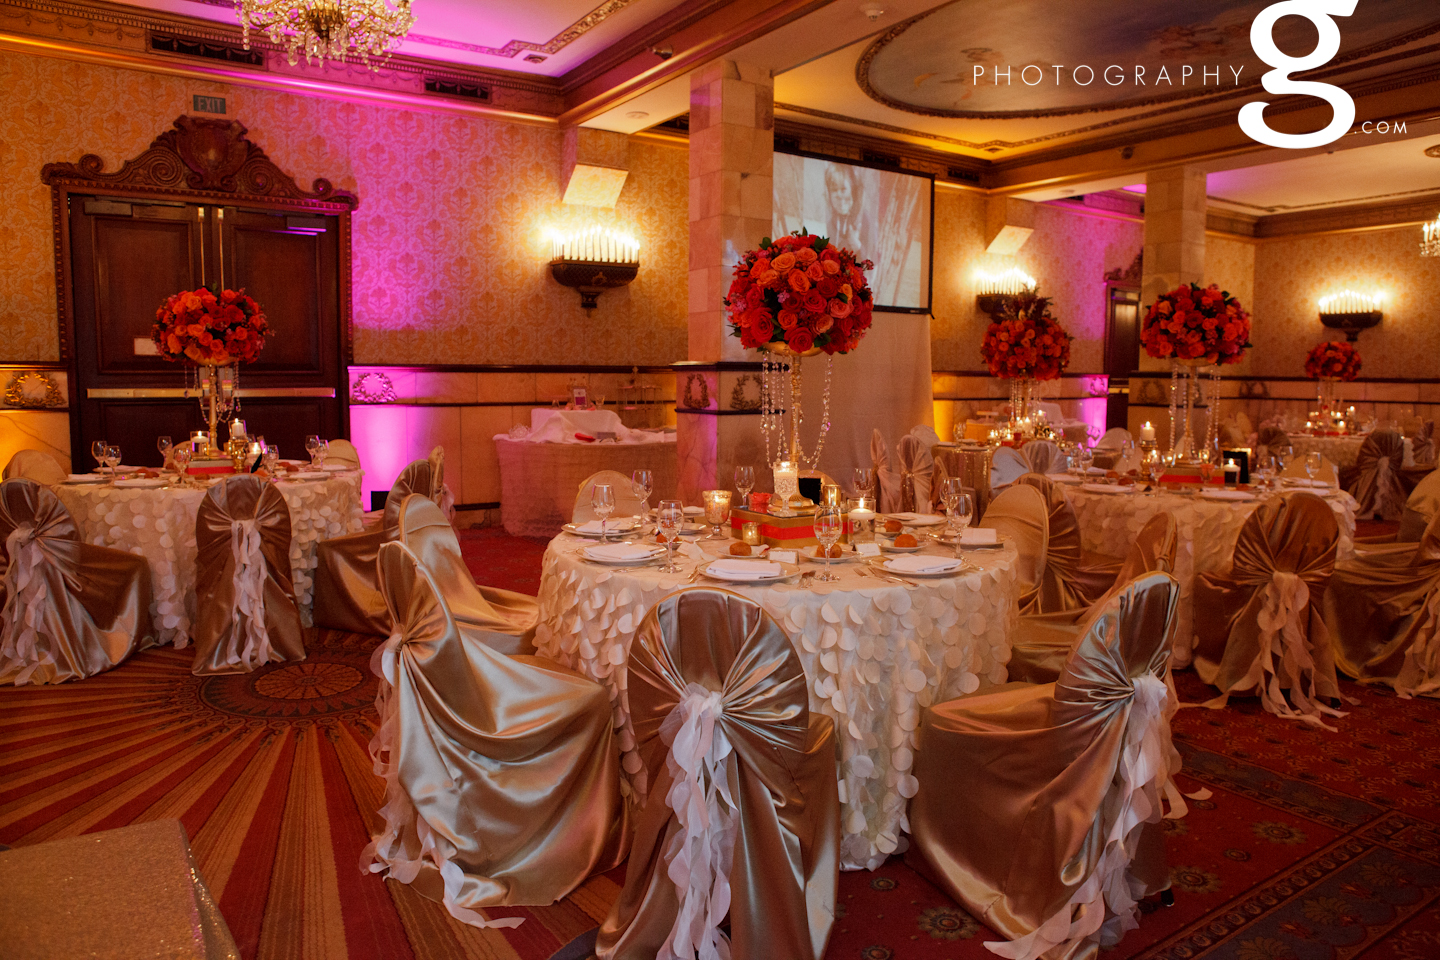 Brown Palace rm, tablescape, linens, florals, lighting pic 14.jpg